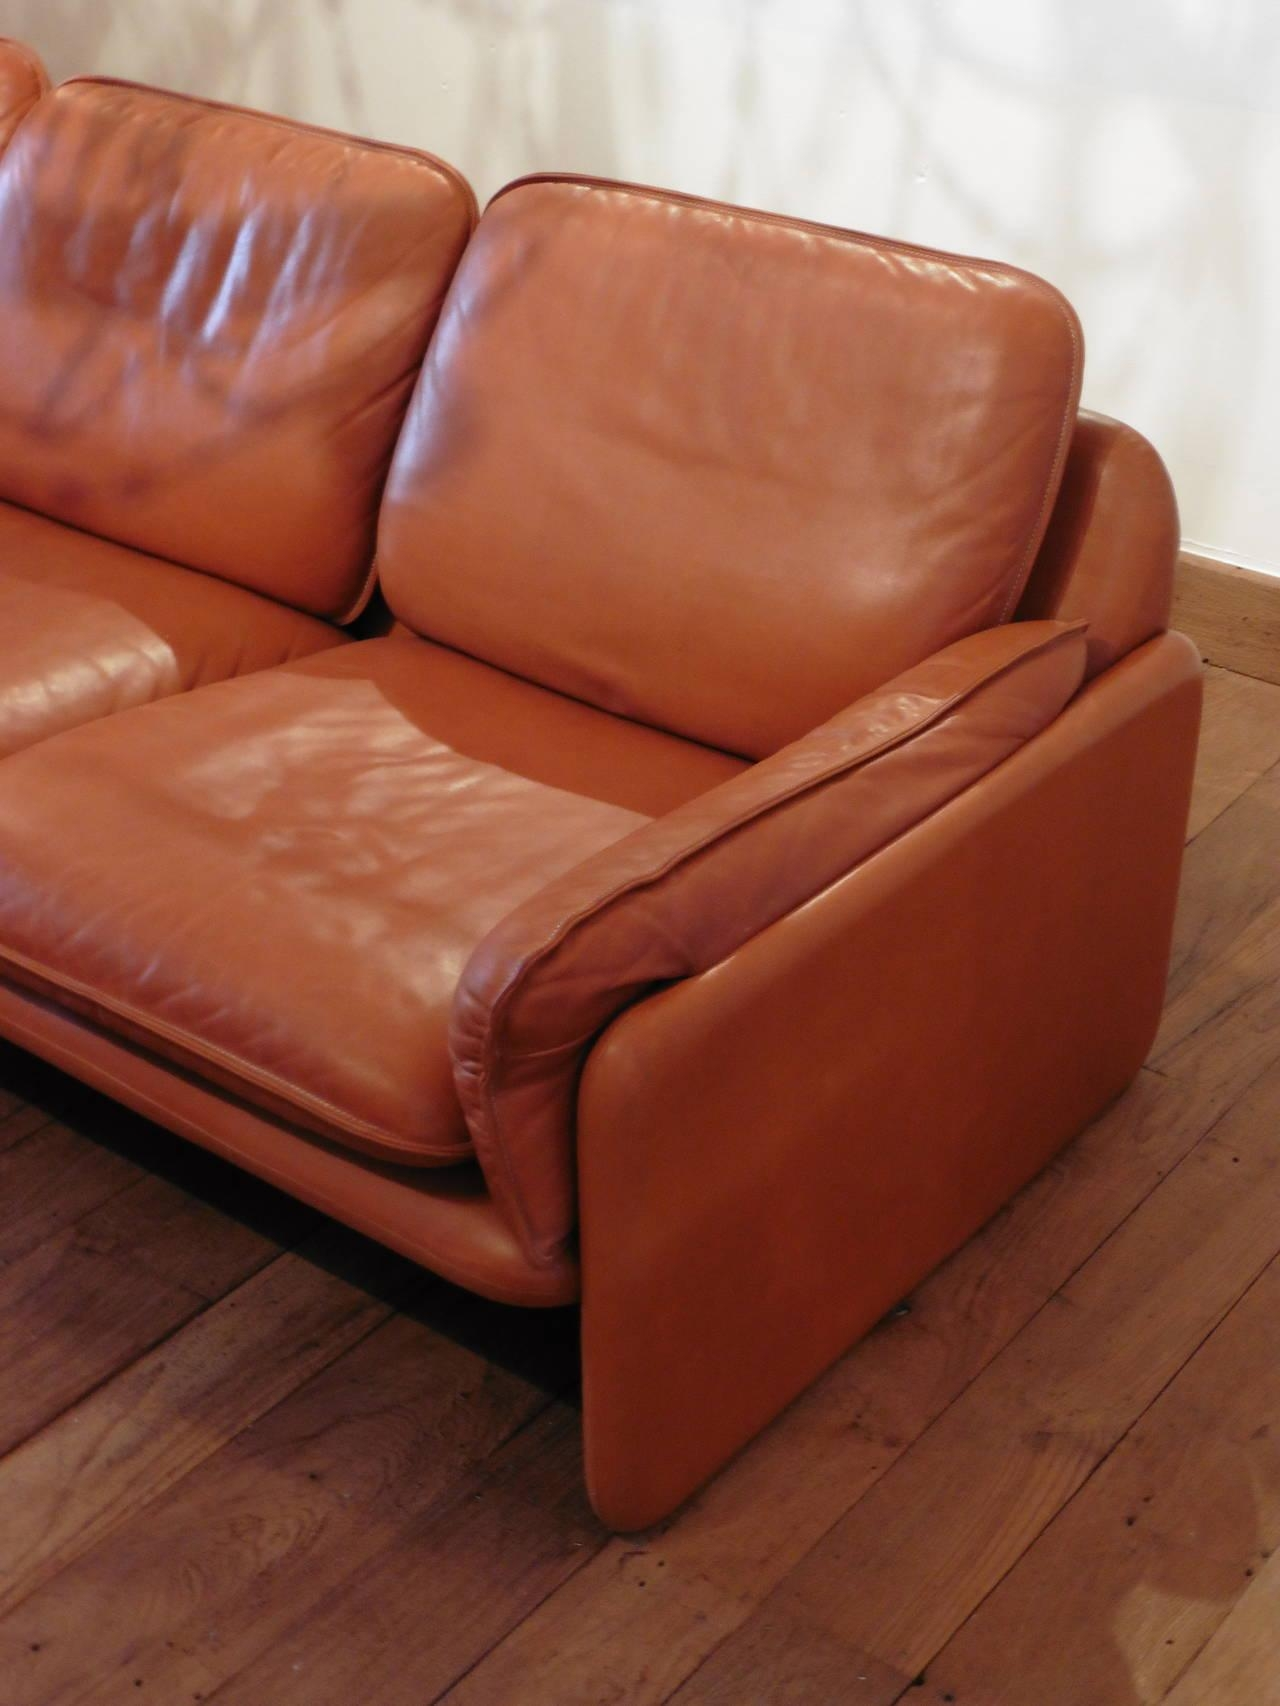 Aniline Leather Sofa With Design Gallery 8035 | Kengire Throughout Aniline Leather Sofas (View 16 of 20)